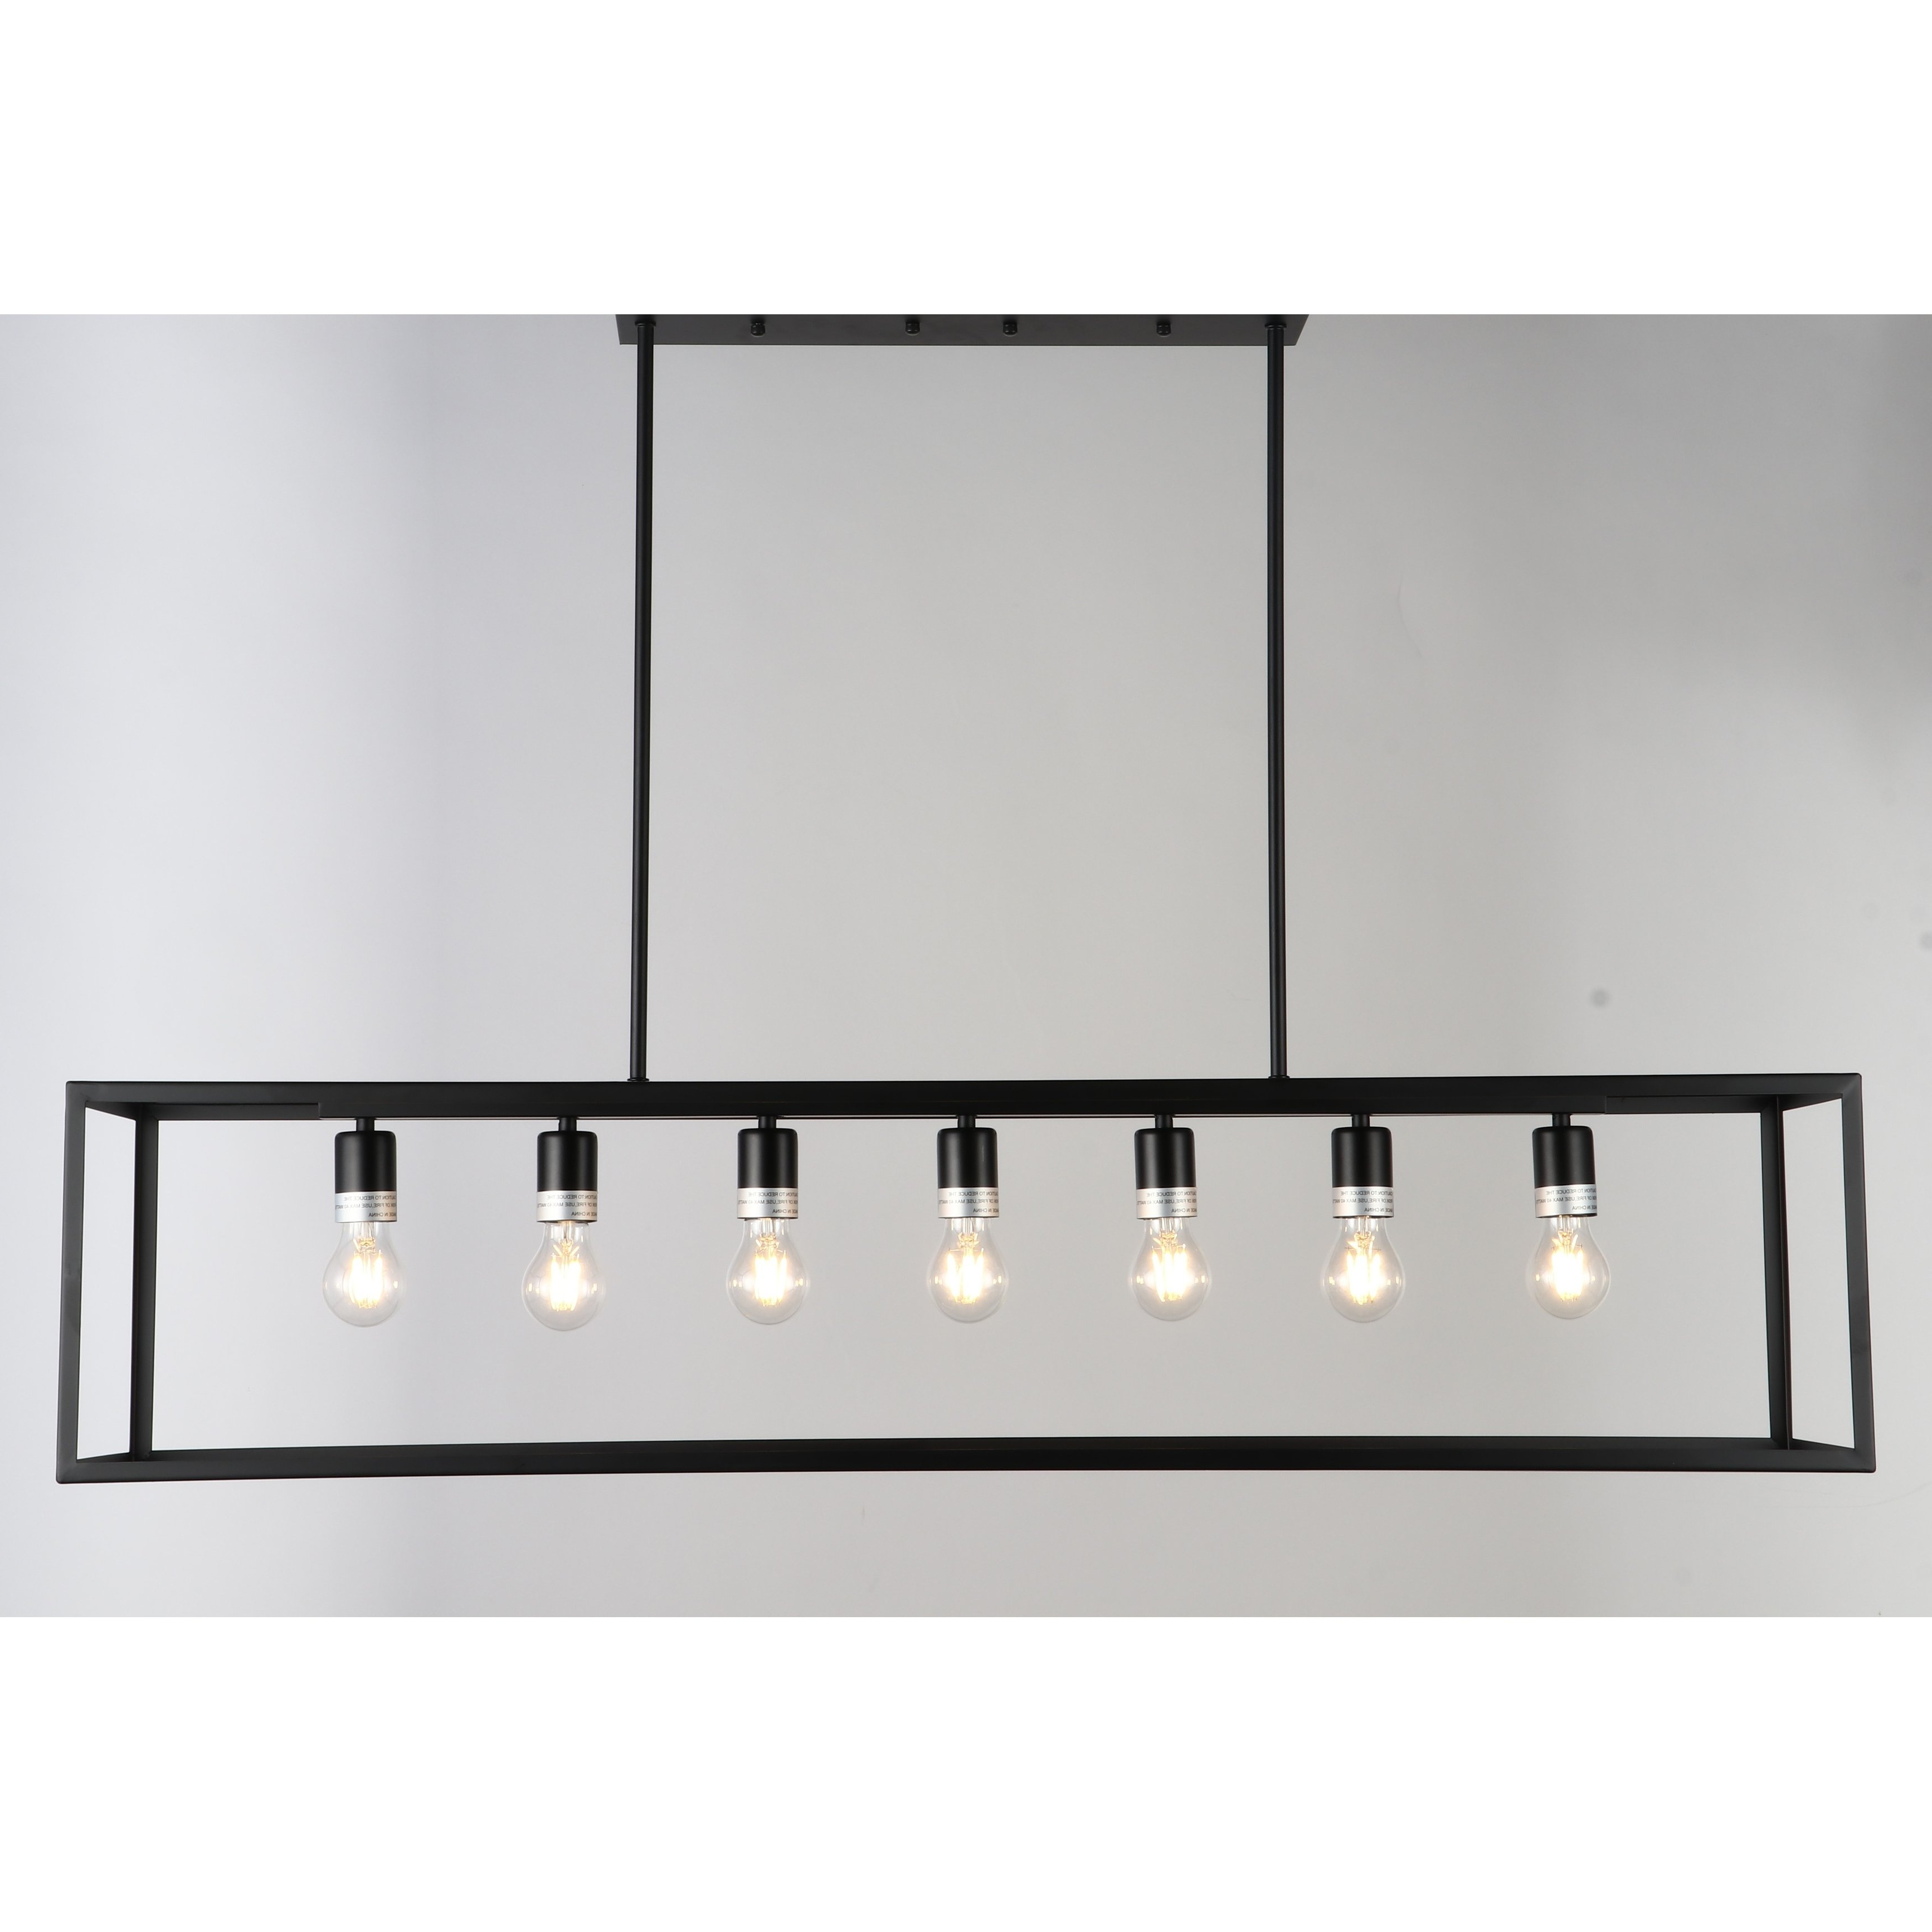 Widely Used Jl Styles Inc Black 7 Light Contemporary Pendant Light In Within Bouvet 5 Light Kitchen Island Linear Pendants (View 20 of 20)